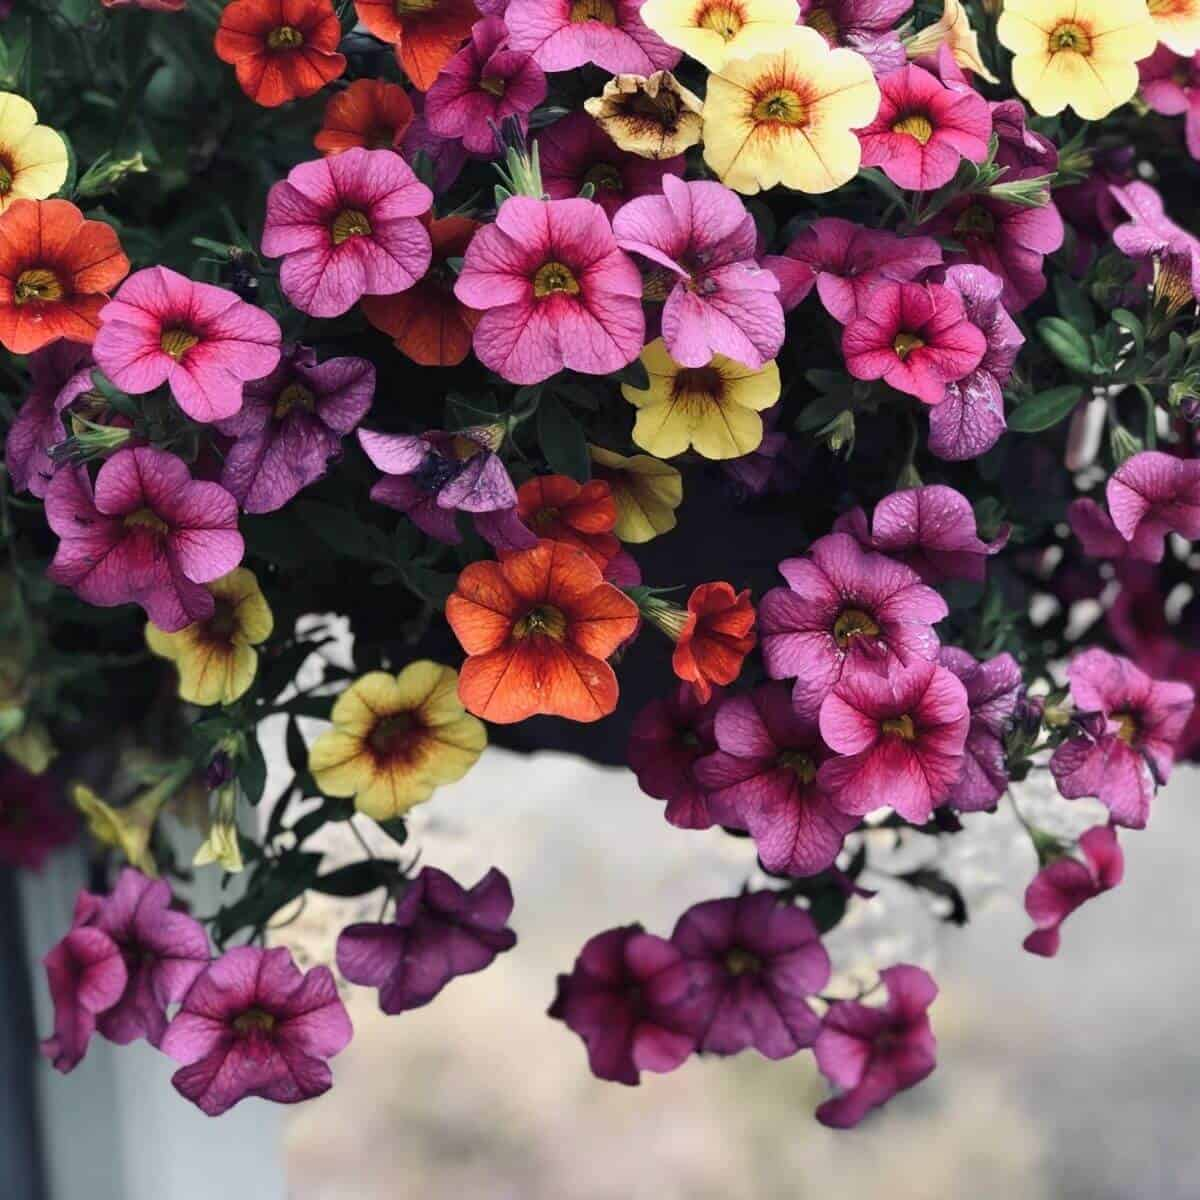 Pink, red, orange, and yellow petunia flowers.